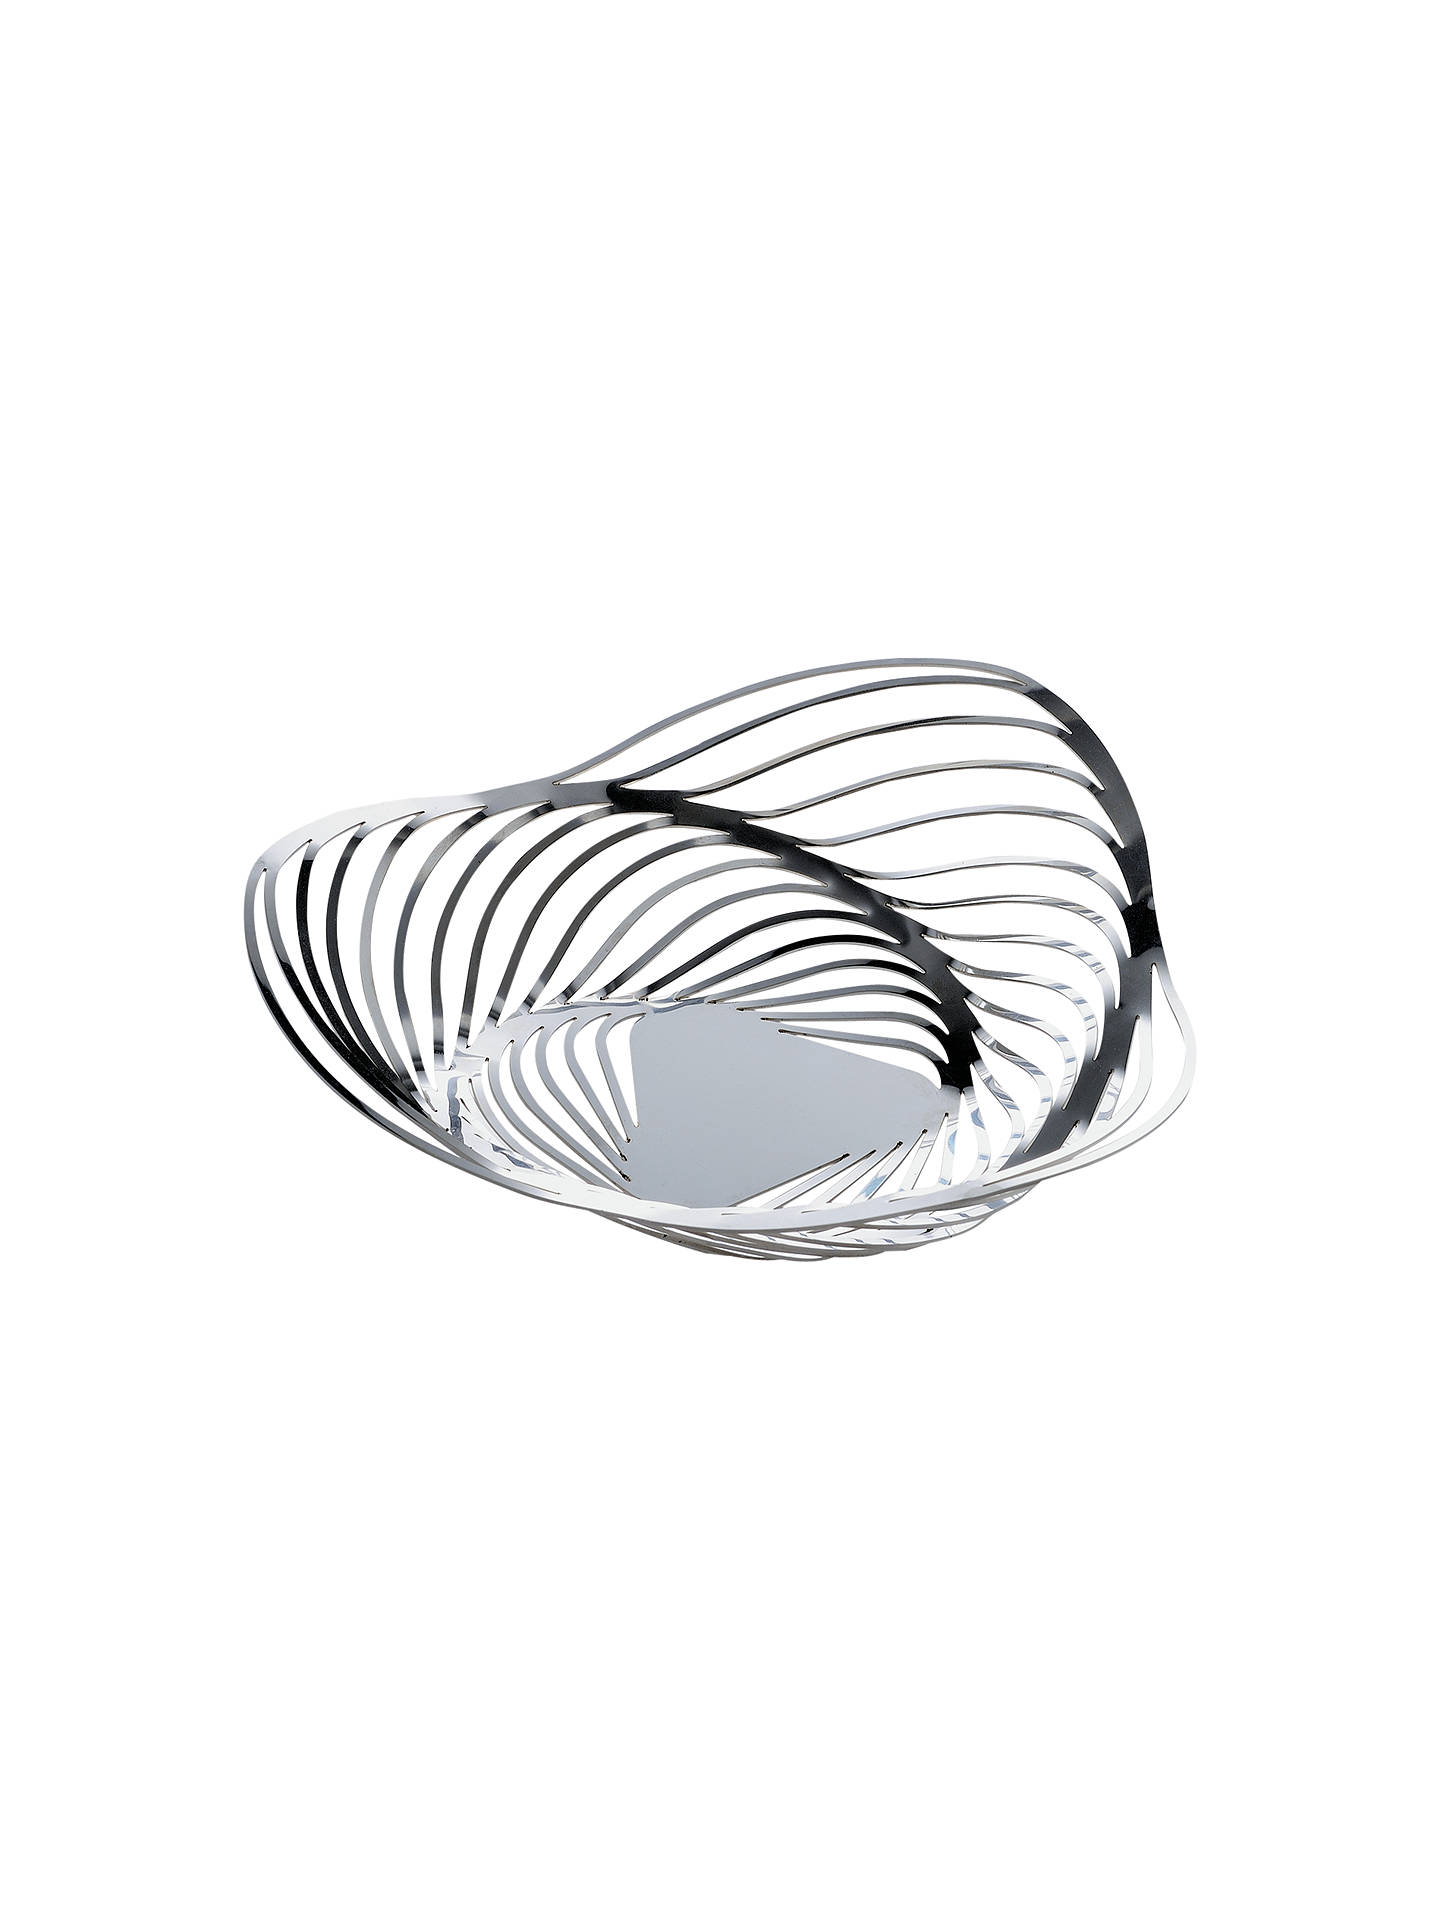 Buyalessi trinity basket online at johnlewis